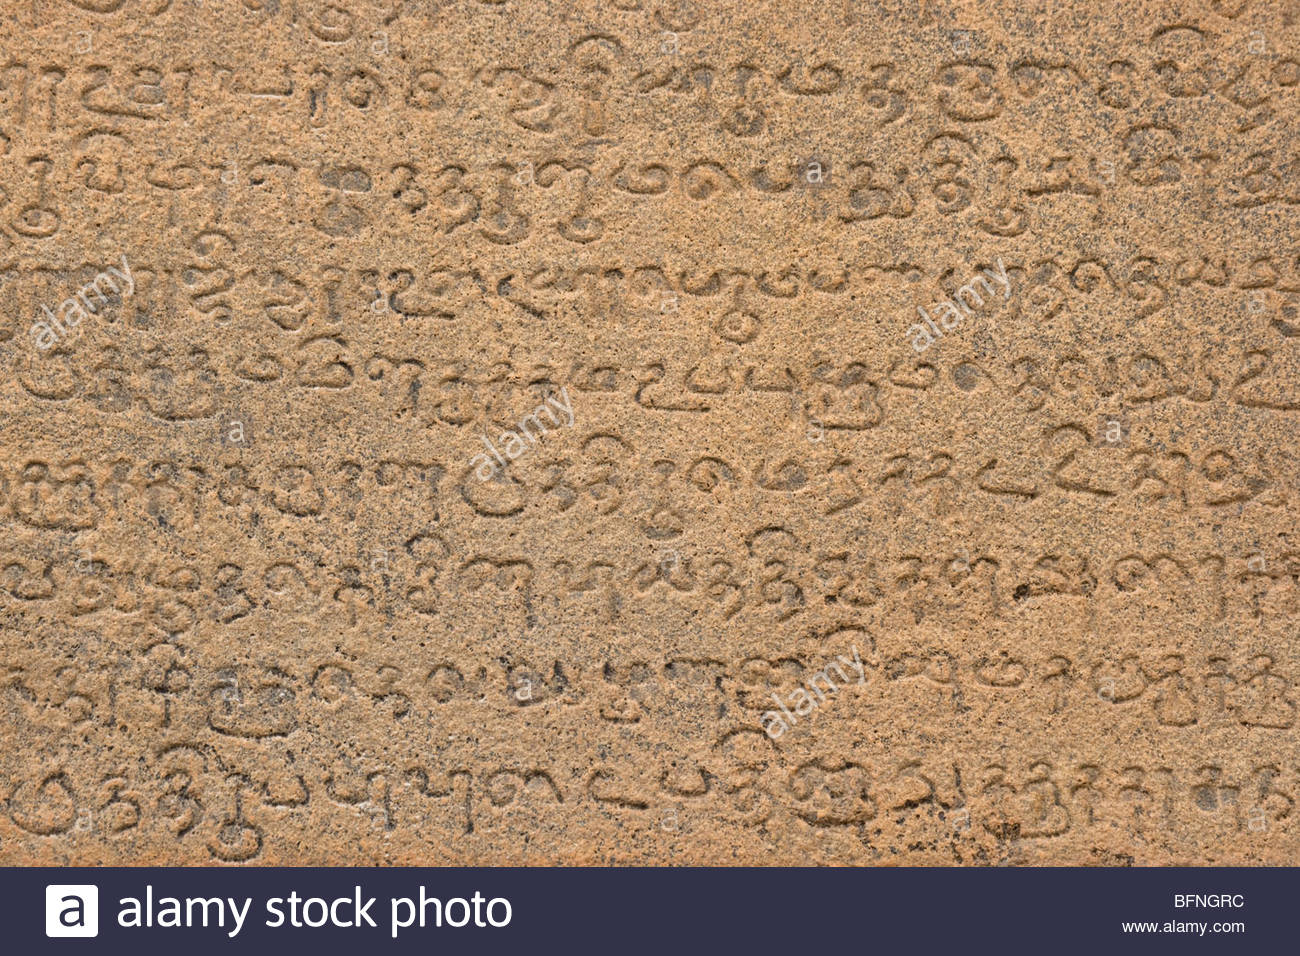 sanskrit essays on temples Trayambakeswar temple – sanskrit essay 184 990 essays, term and 4-3-2010 free essays on in sanskrit language essay on the topic of common wealth games the tower of babel enter site essay on spies by michael frayn and the confusion of languages संस्कृतम्) is a language of ancient india with a documented.